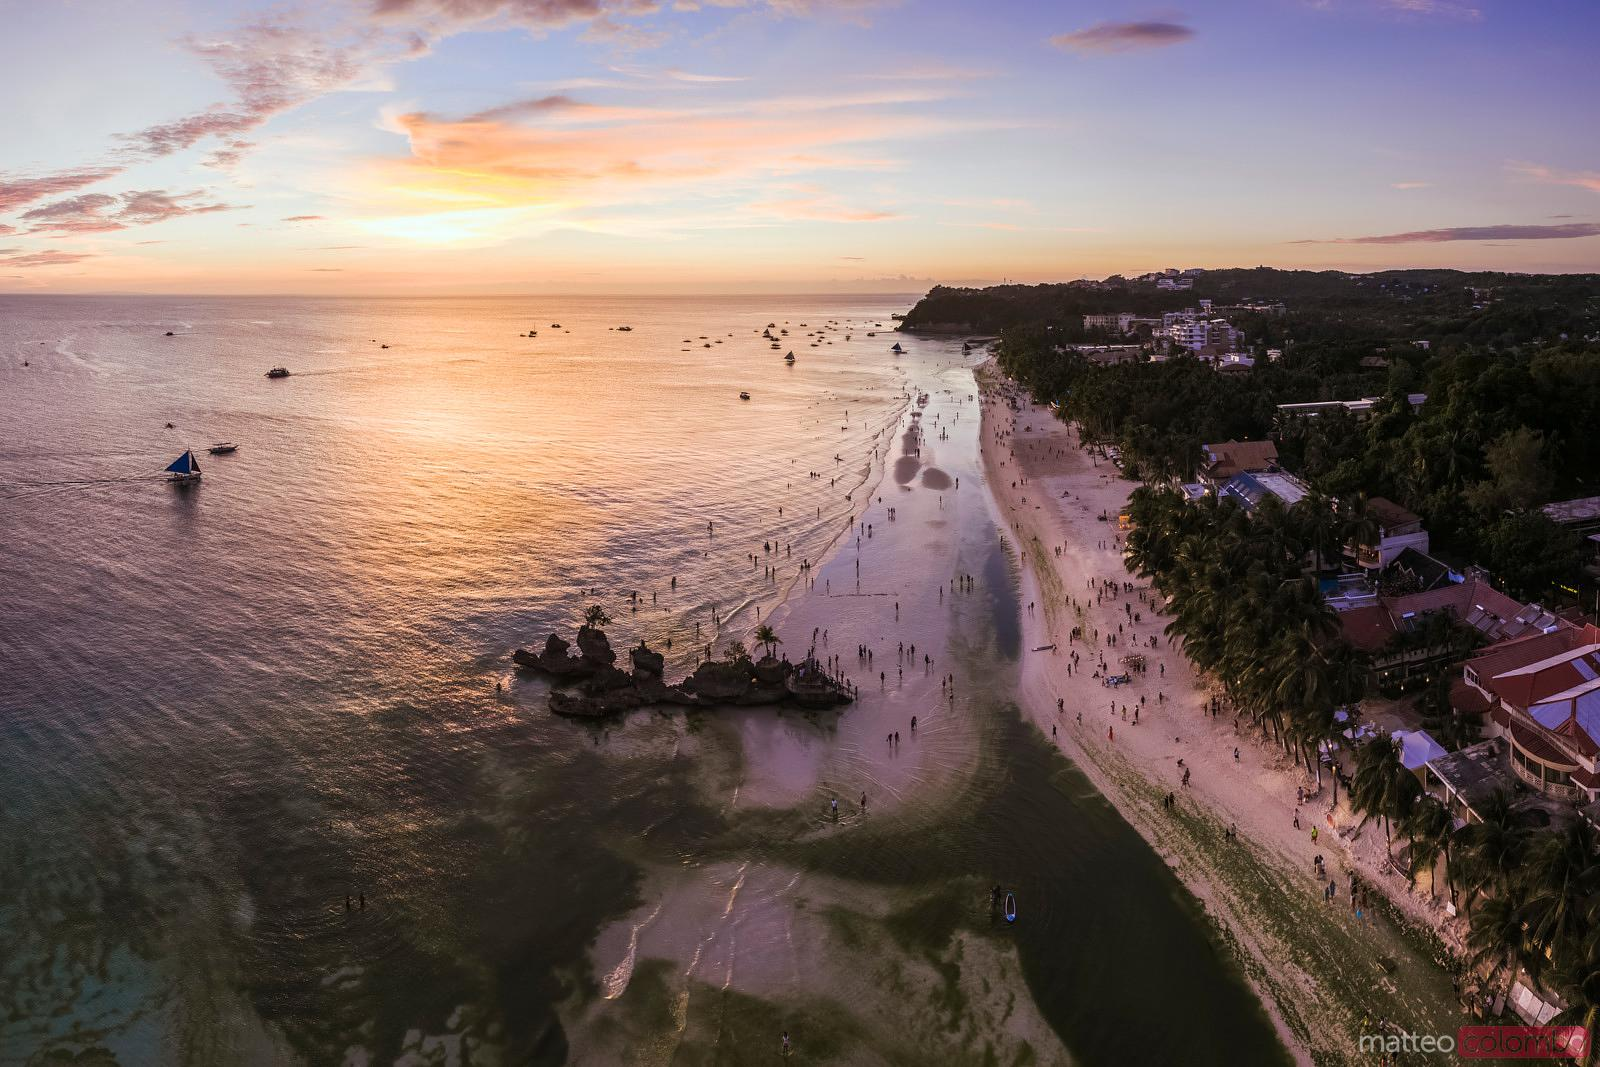 Sunset over White beach and Willy's rock, Boracay